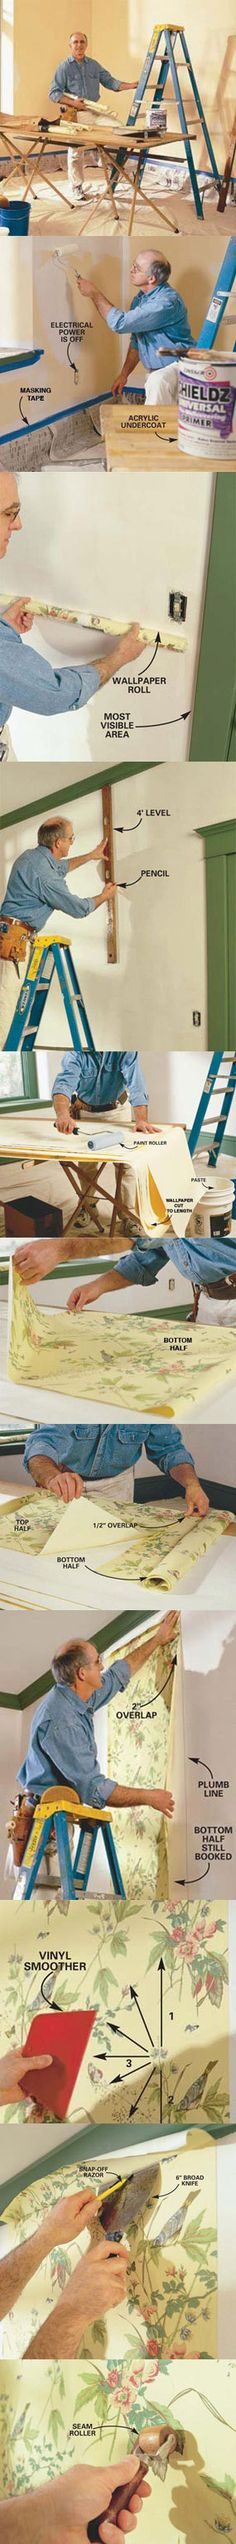 Learn how to hang prepasted wallpaper and get all the steps including making perfect corners at http://www.familyhandyman.com/DIY-Projects/Home-Decorating/Wallpaper/how-to-hang-prepasted-wallpaper/View-All